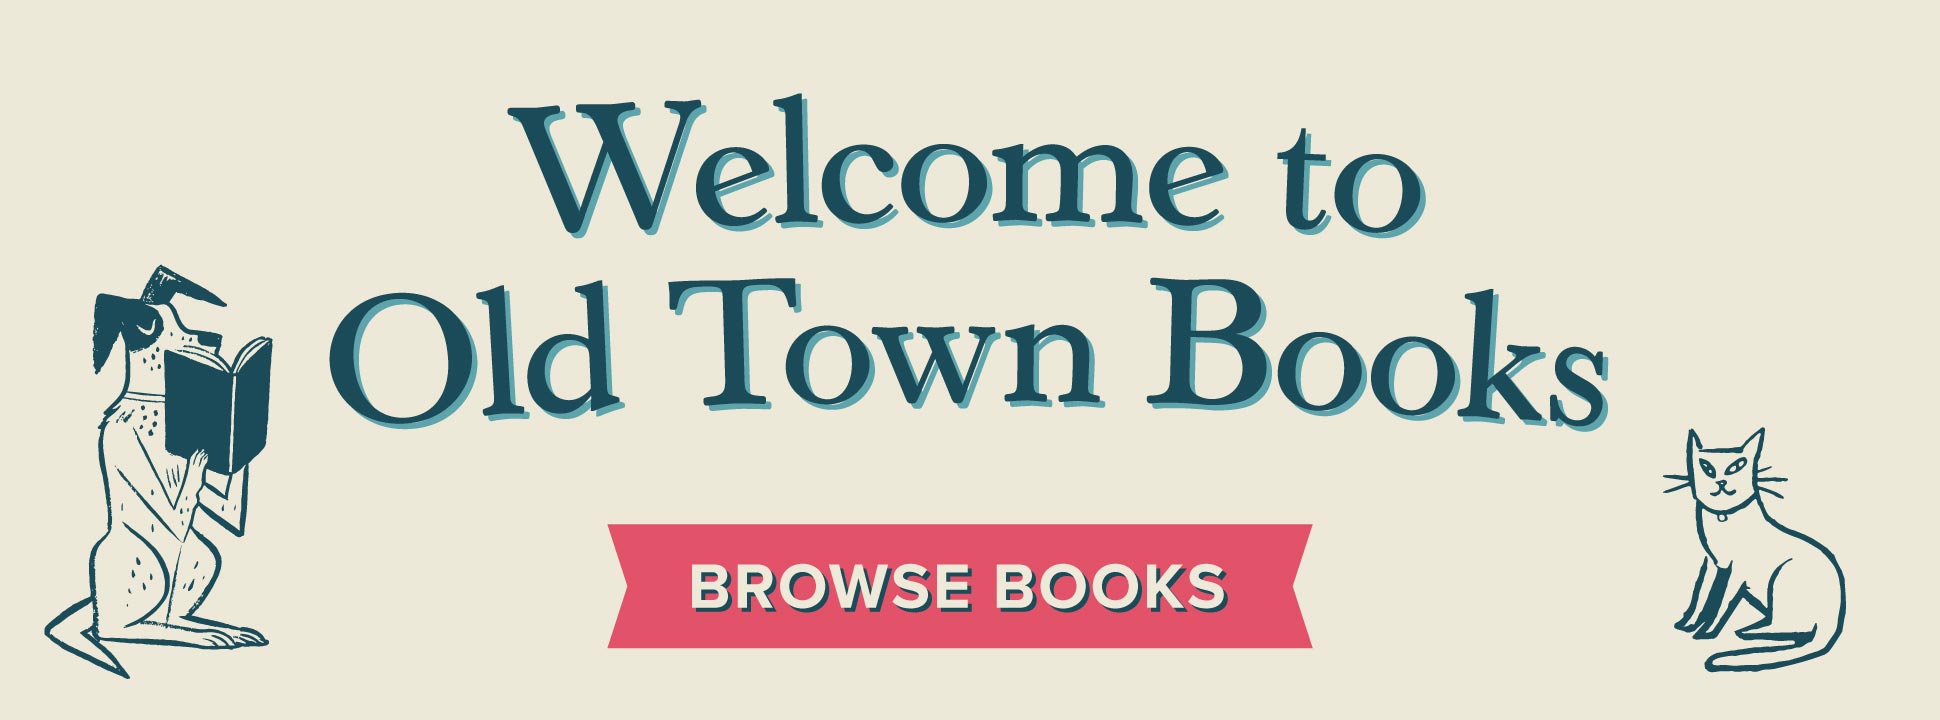 Welcome to Old Town Books!